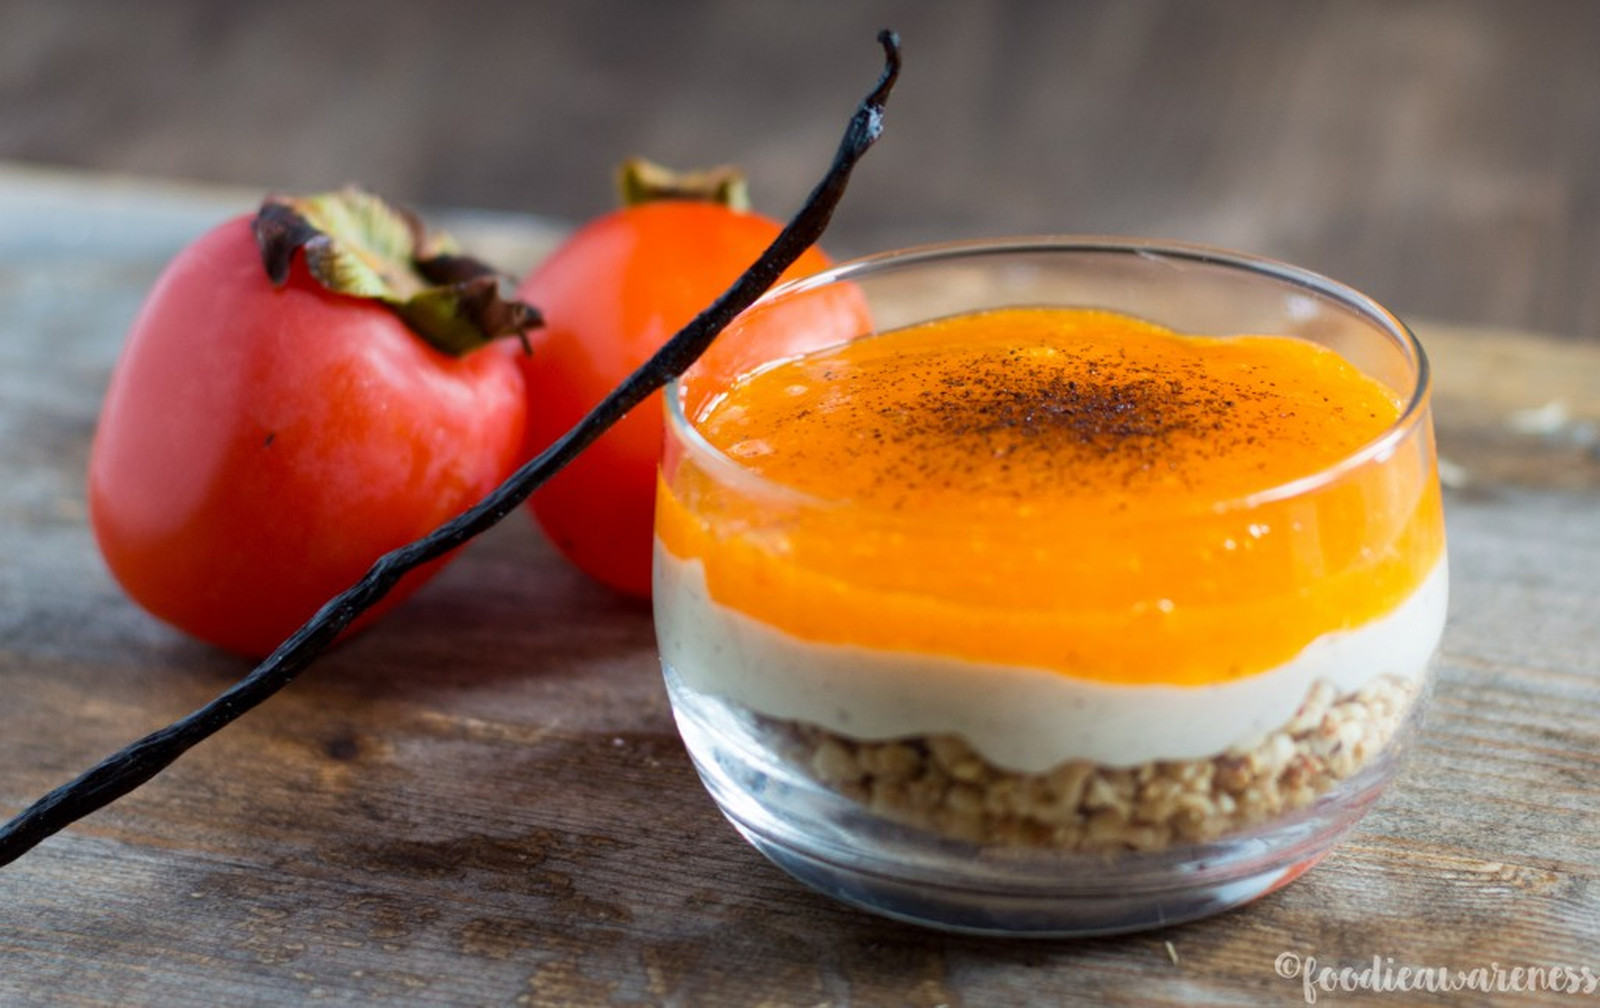 Persimmon Parfait With Hazelnut Crunch